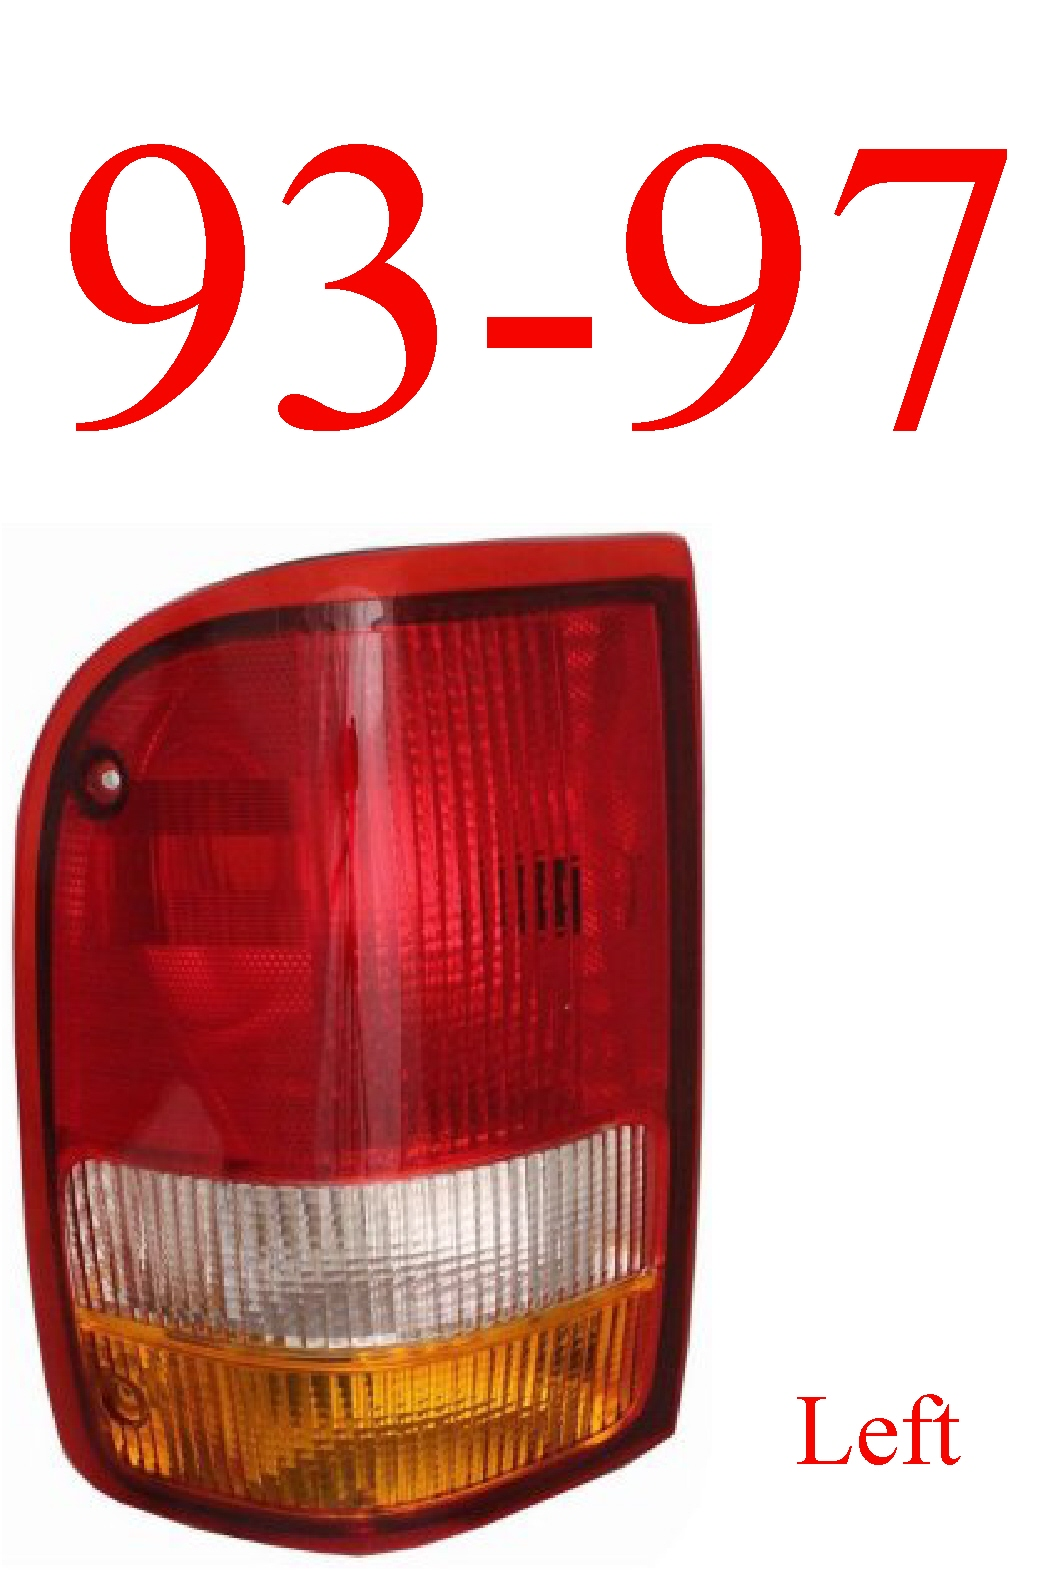 93-97 Ranger Left Tail Light Assembly